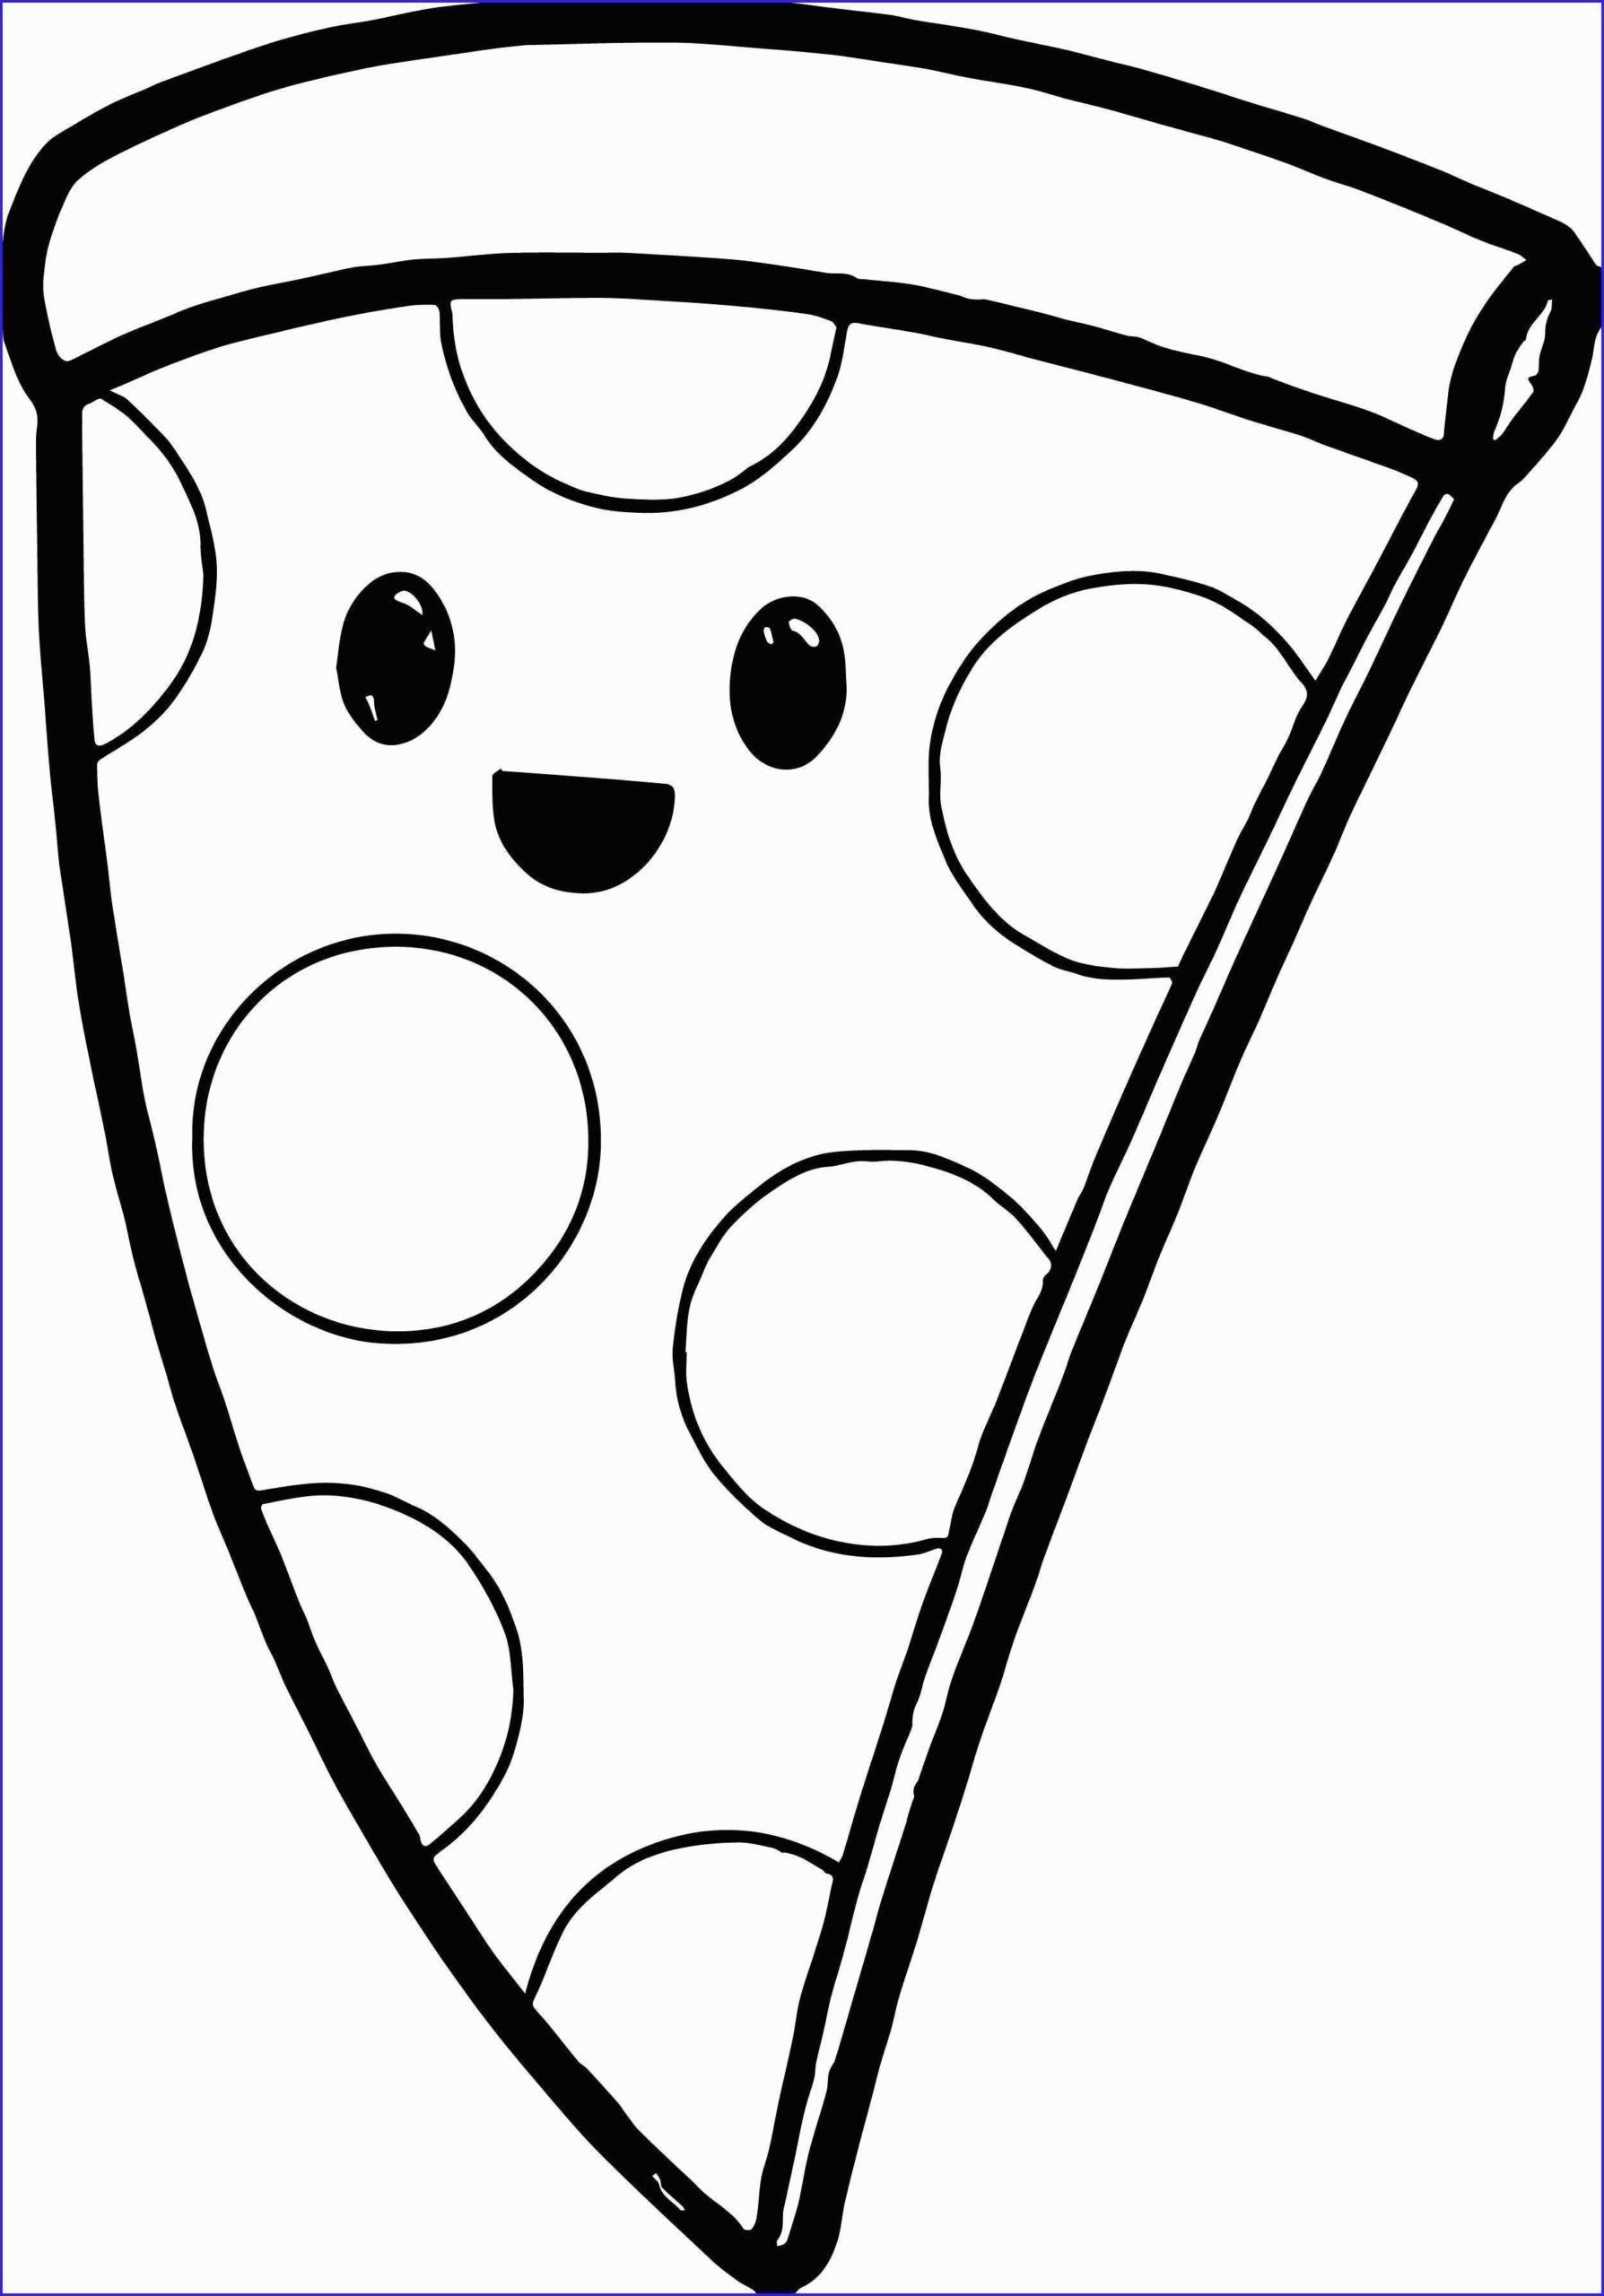 Cute Drawings Coloring Pages Cute Drawings For Kids Draw So Cute Shopkins Colouring Pages Easy Coloring Pages Cute Coloring Pages